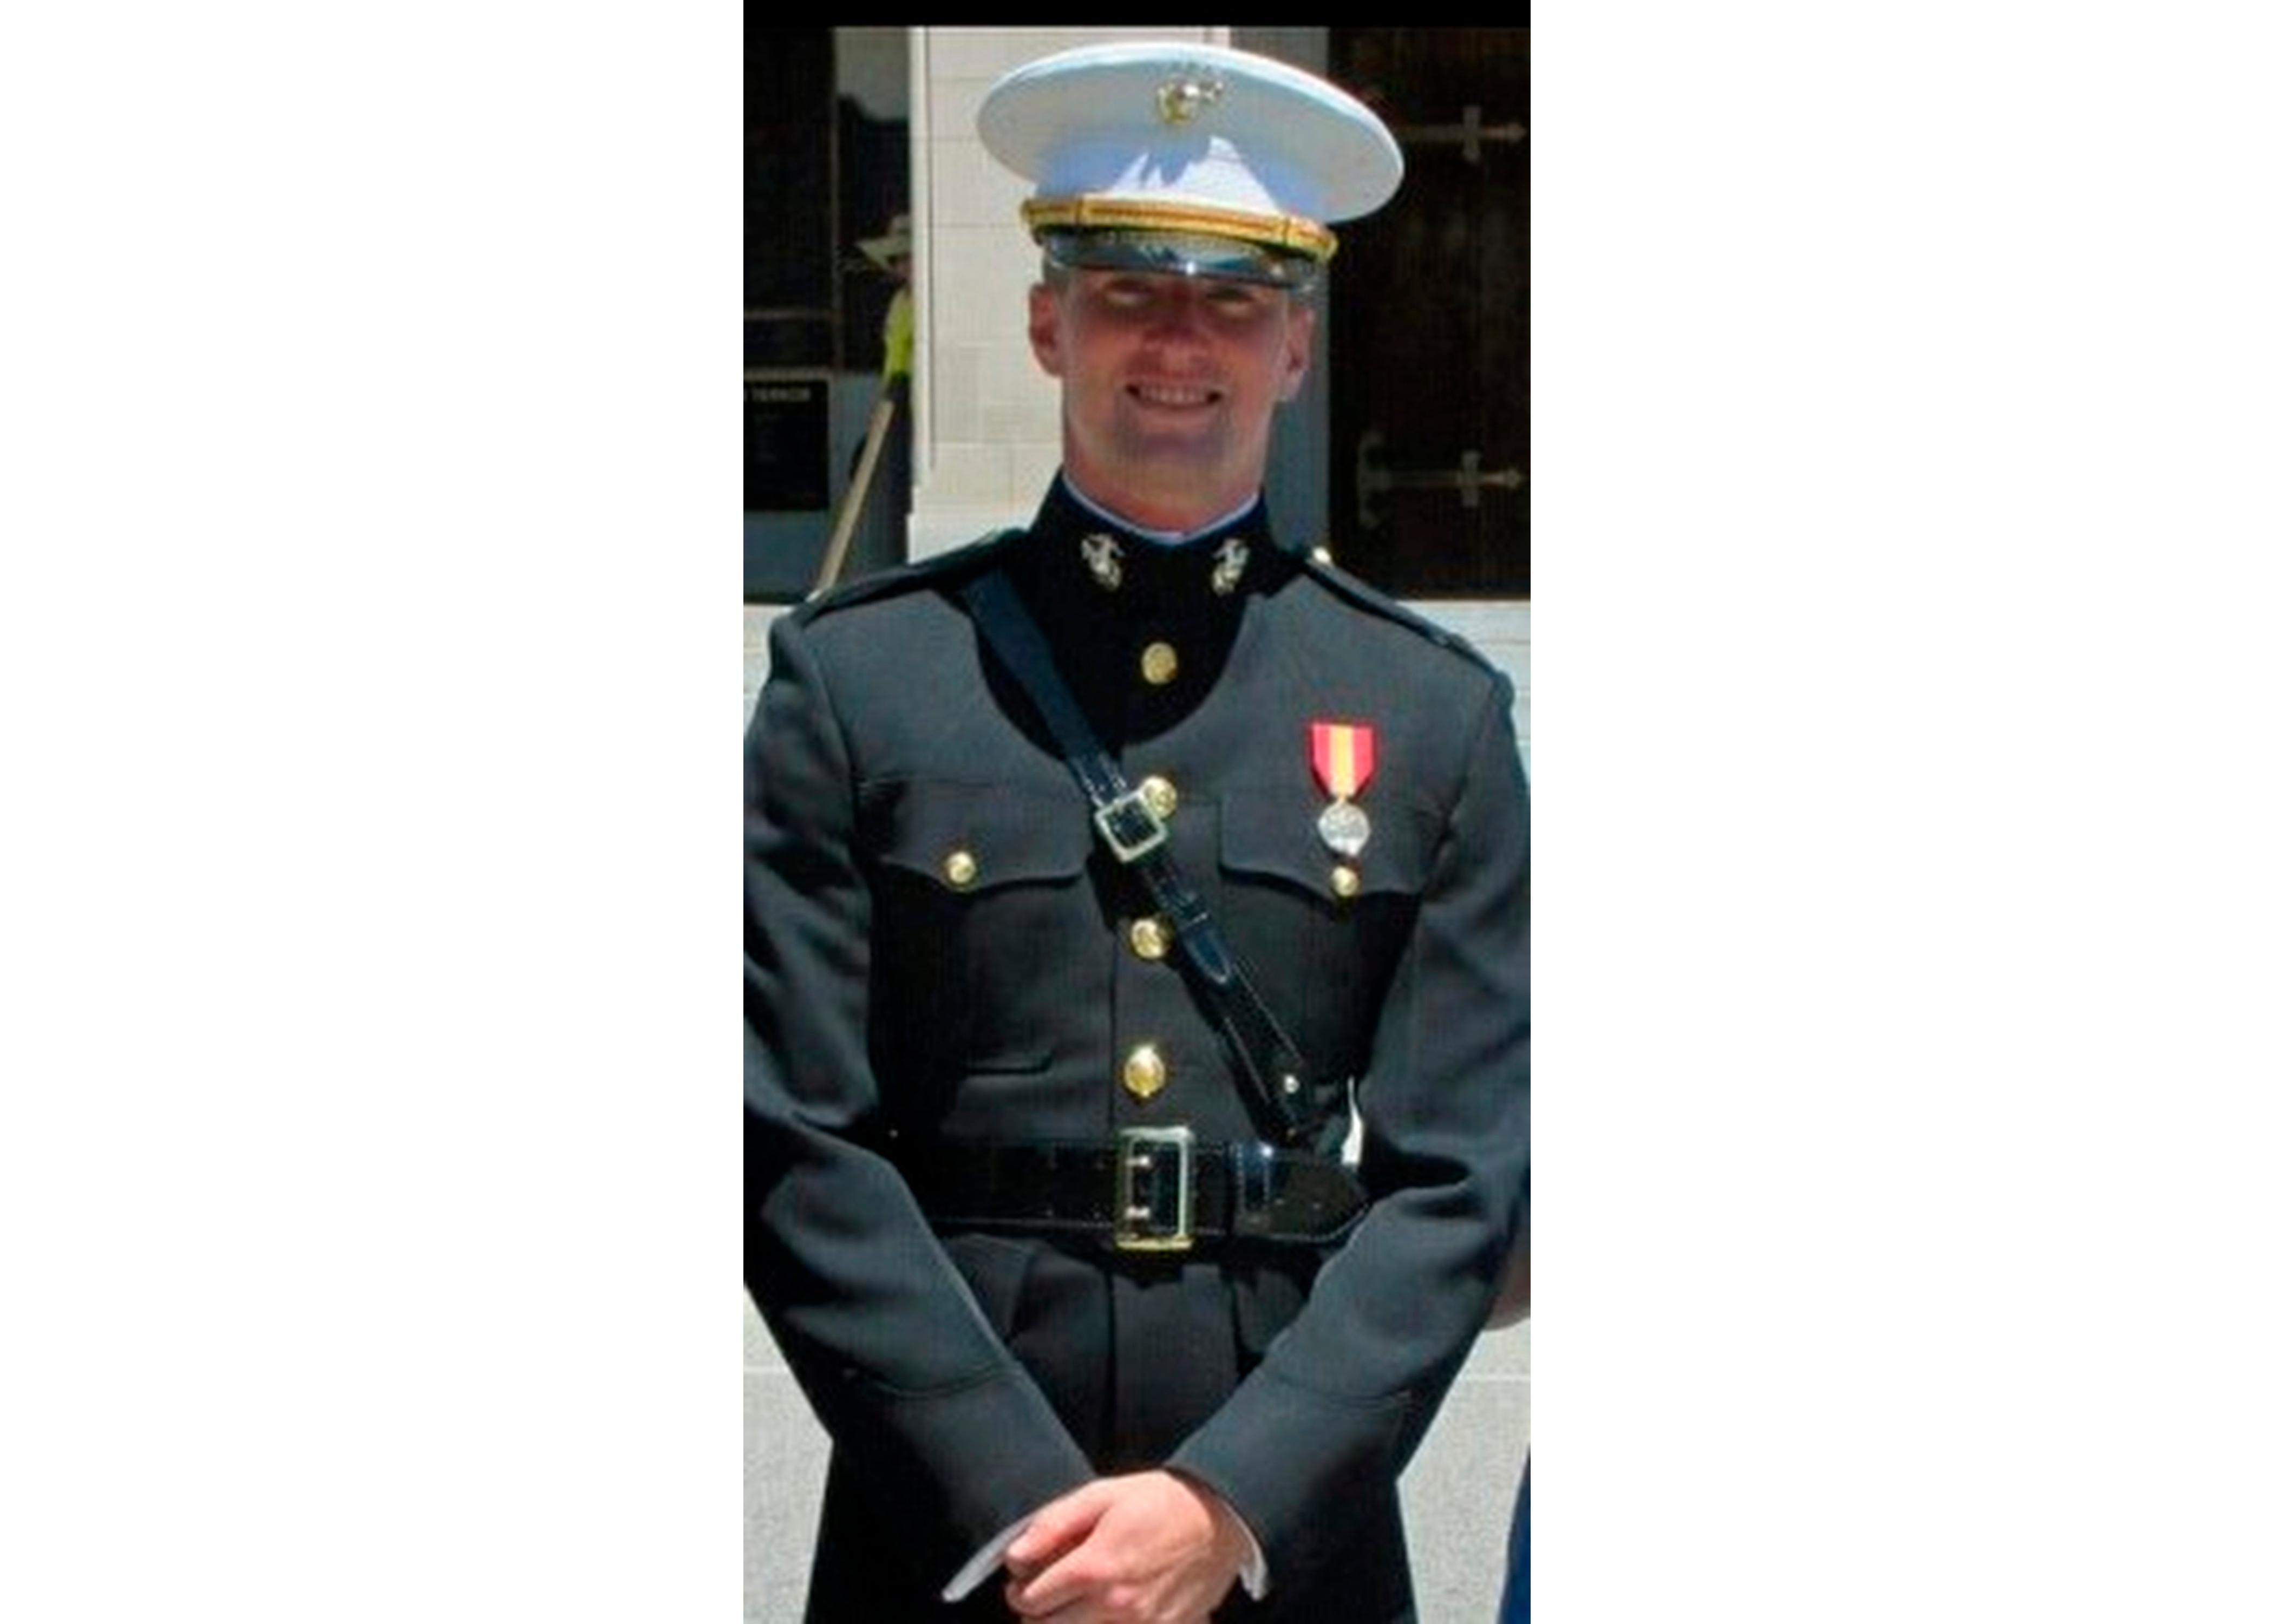 Marine Platoon Commander From D C Killed In Accident At